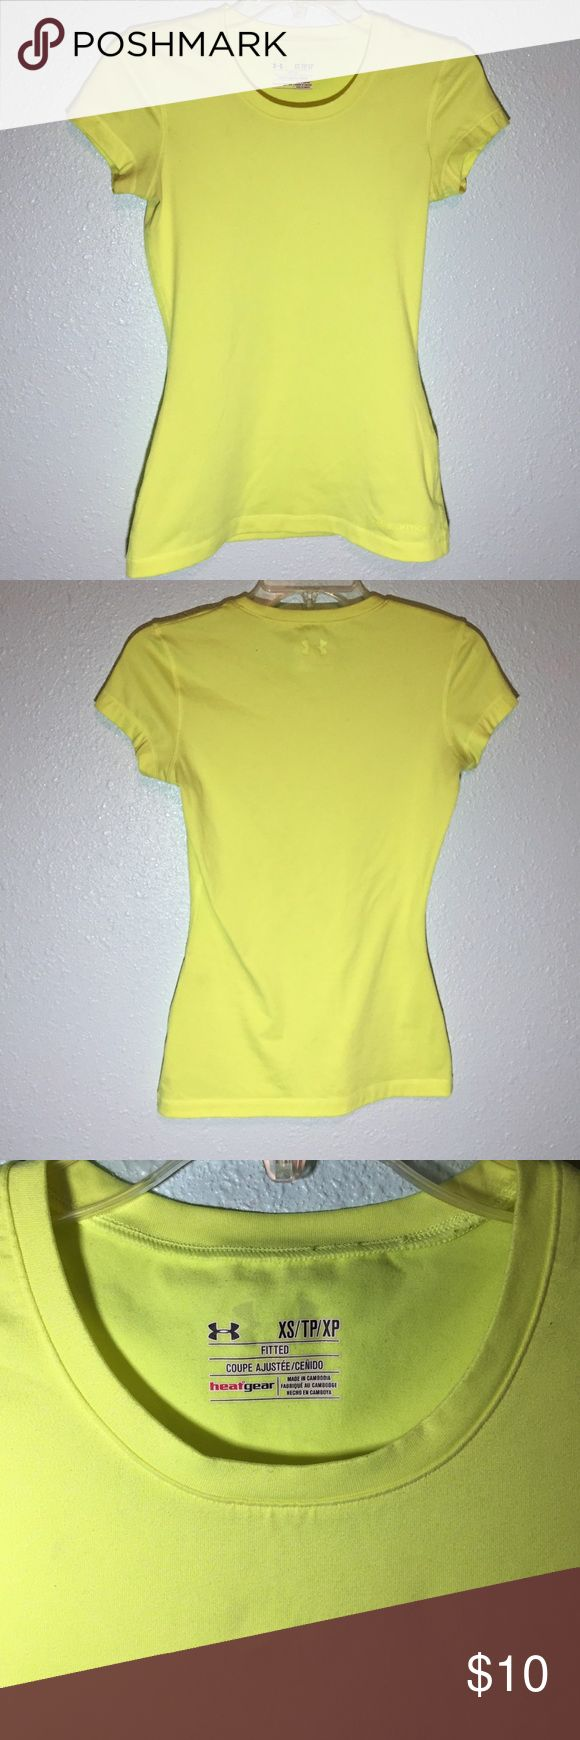 A heat gear under armor shirt This is a fitted under amor heat gear shirt that keeps you warm and fits under another shirt. 💛 Under Armour Tops Tees - Short Sleeve